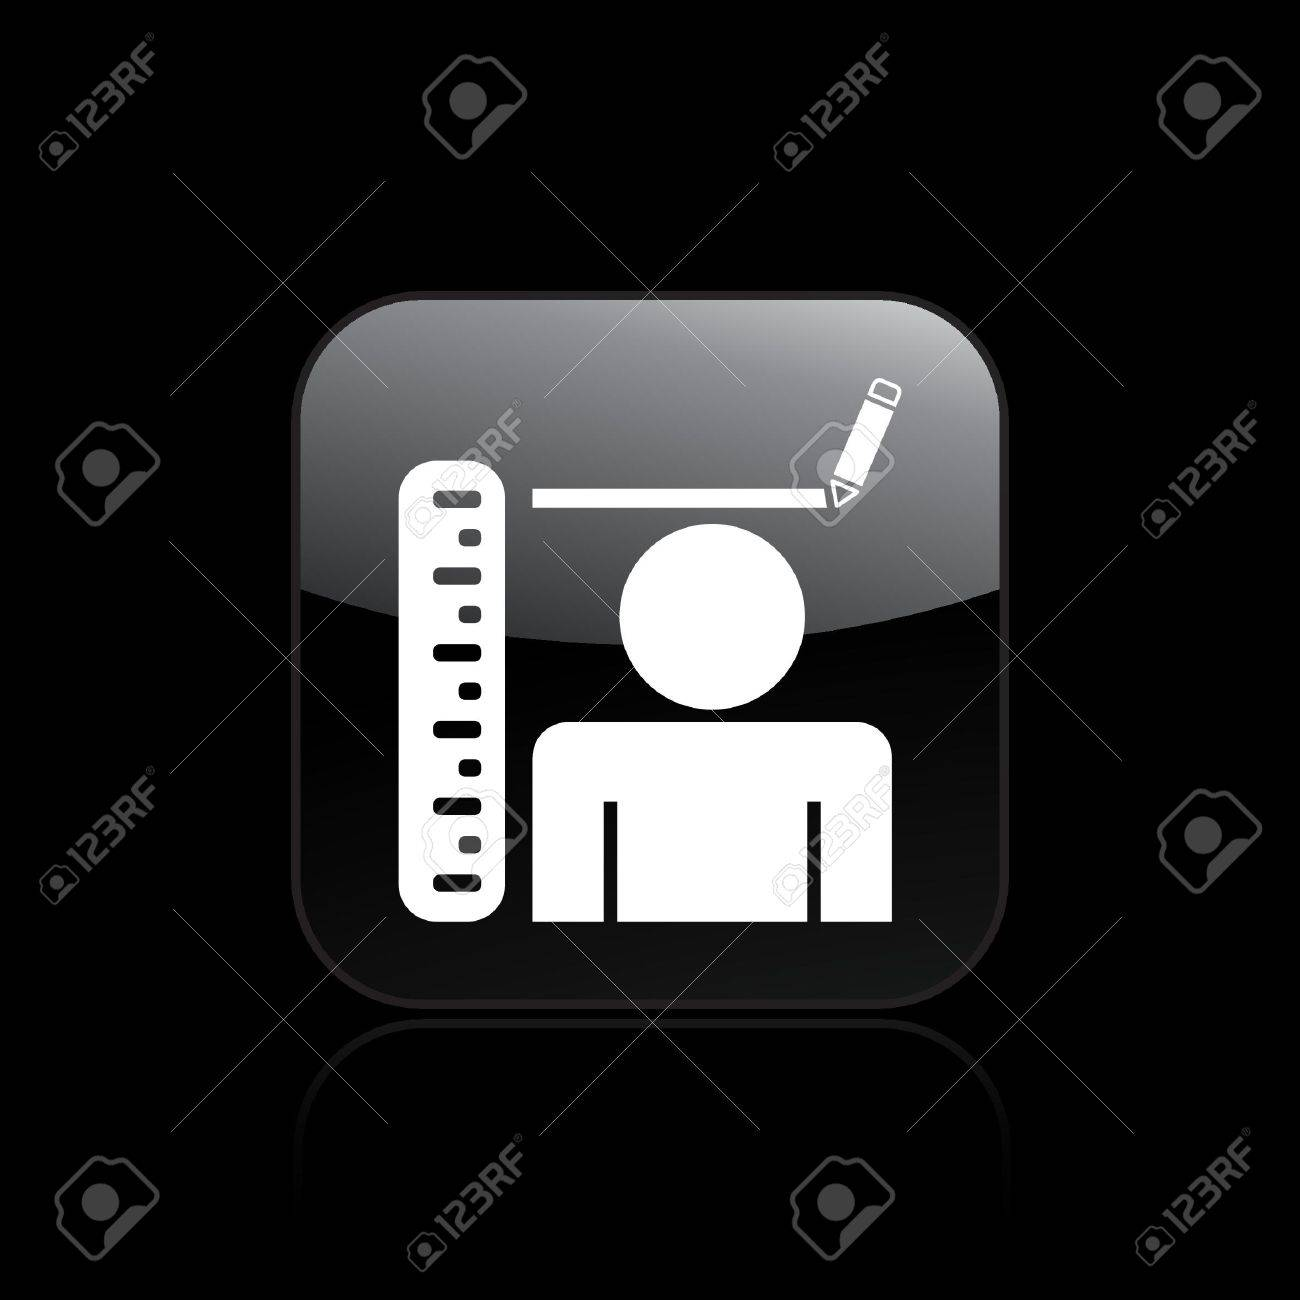 Vector illustration of single isolated stature icon Stock Vector - 12127284